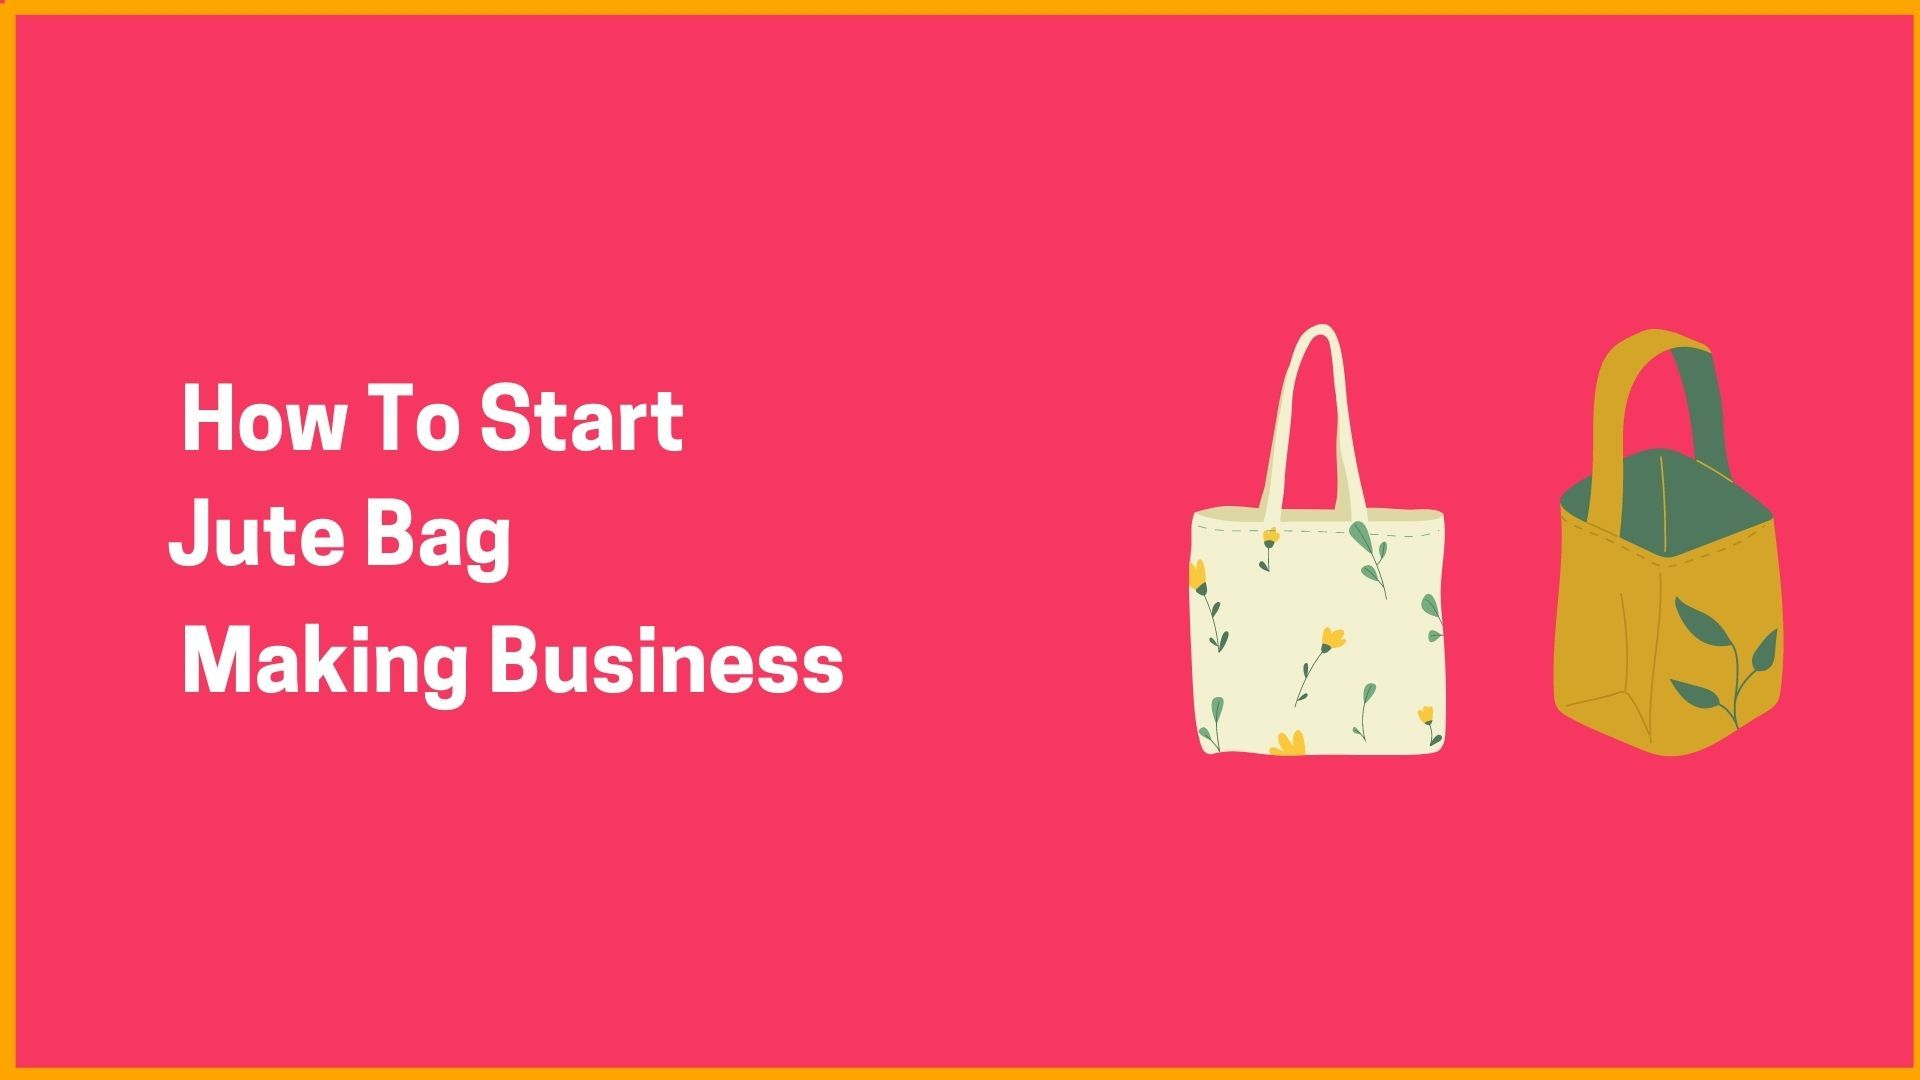 How To Start Jute Bag Making Business